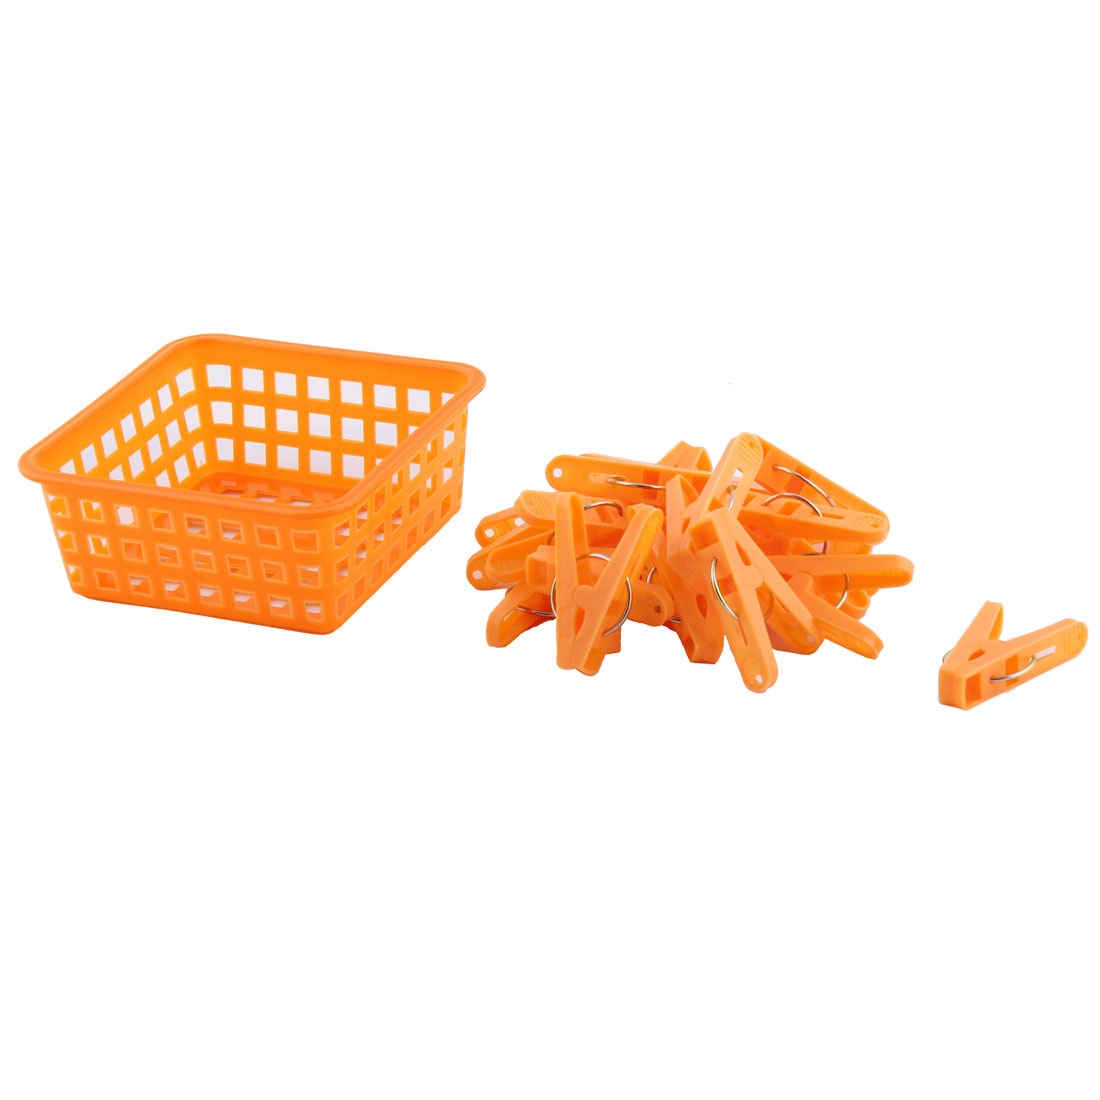 Home Clothes Hanging Pegs Clothespins Hanger Clips Orange 20pcs w Storage Basket